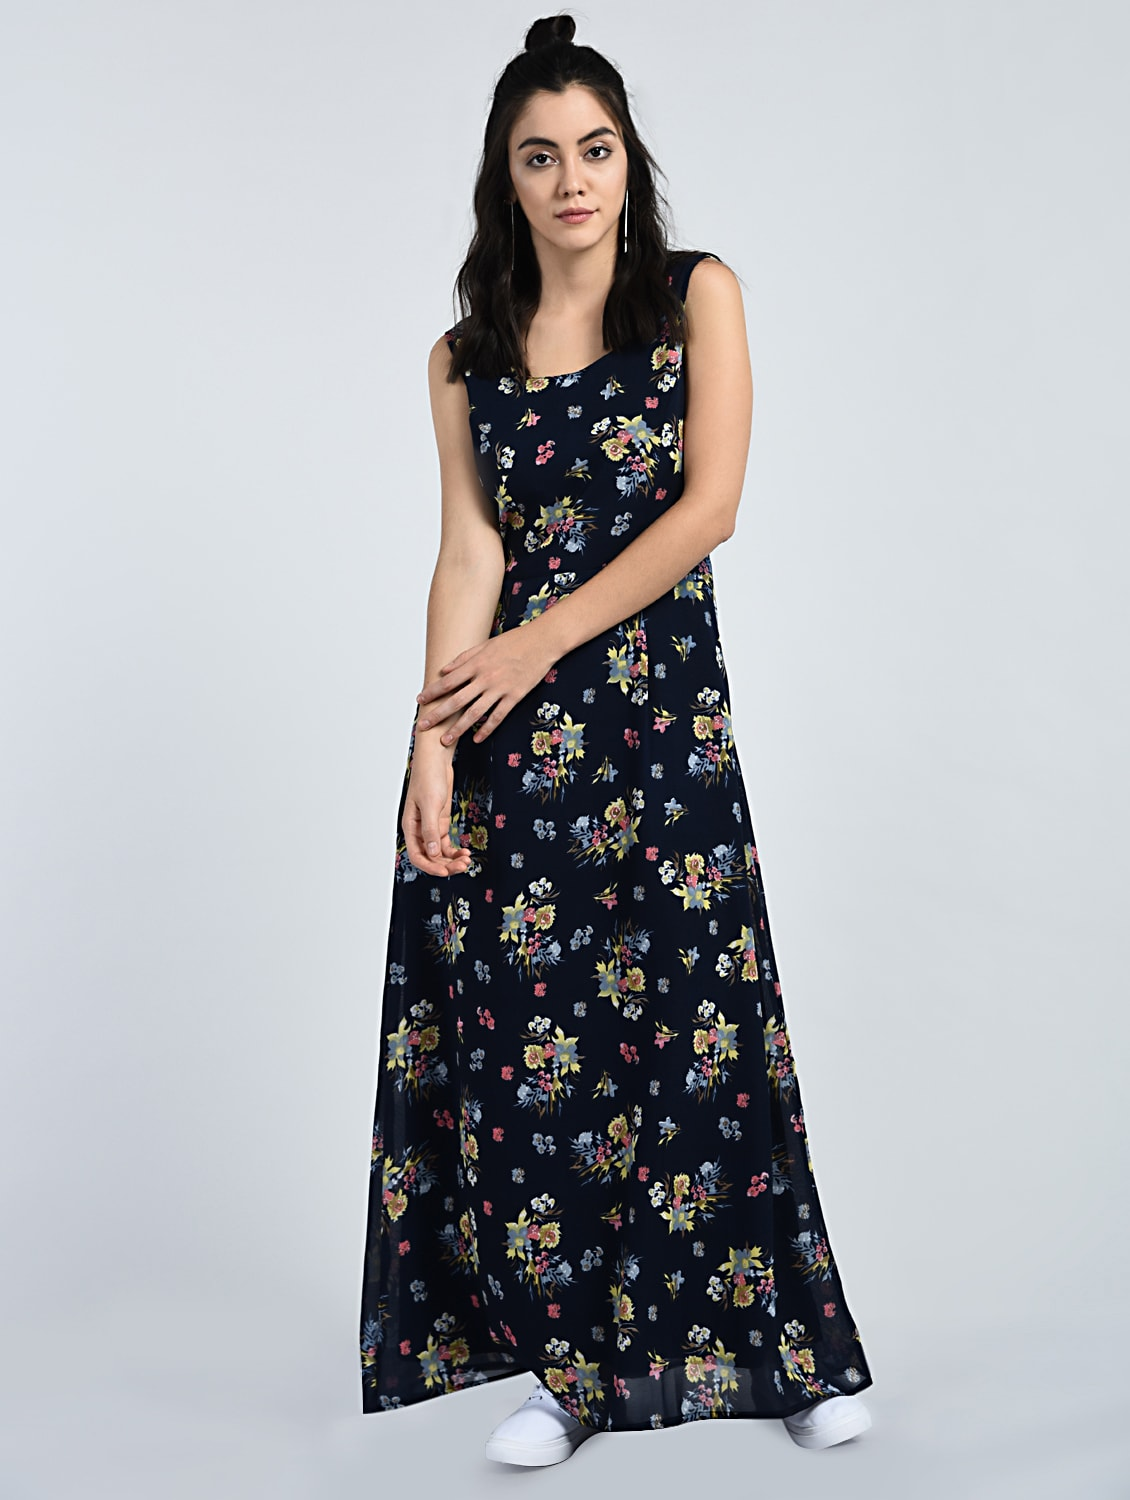 72b94f2b12 Buy Floral Sleeveless Maxi Dress for Women from A K Fashion for ...